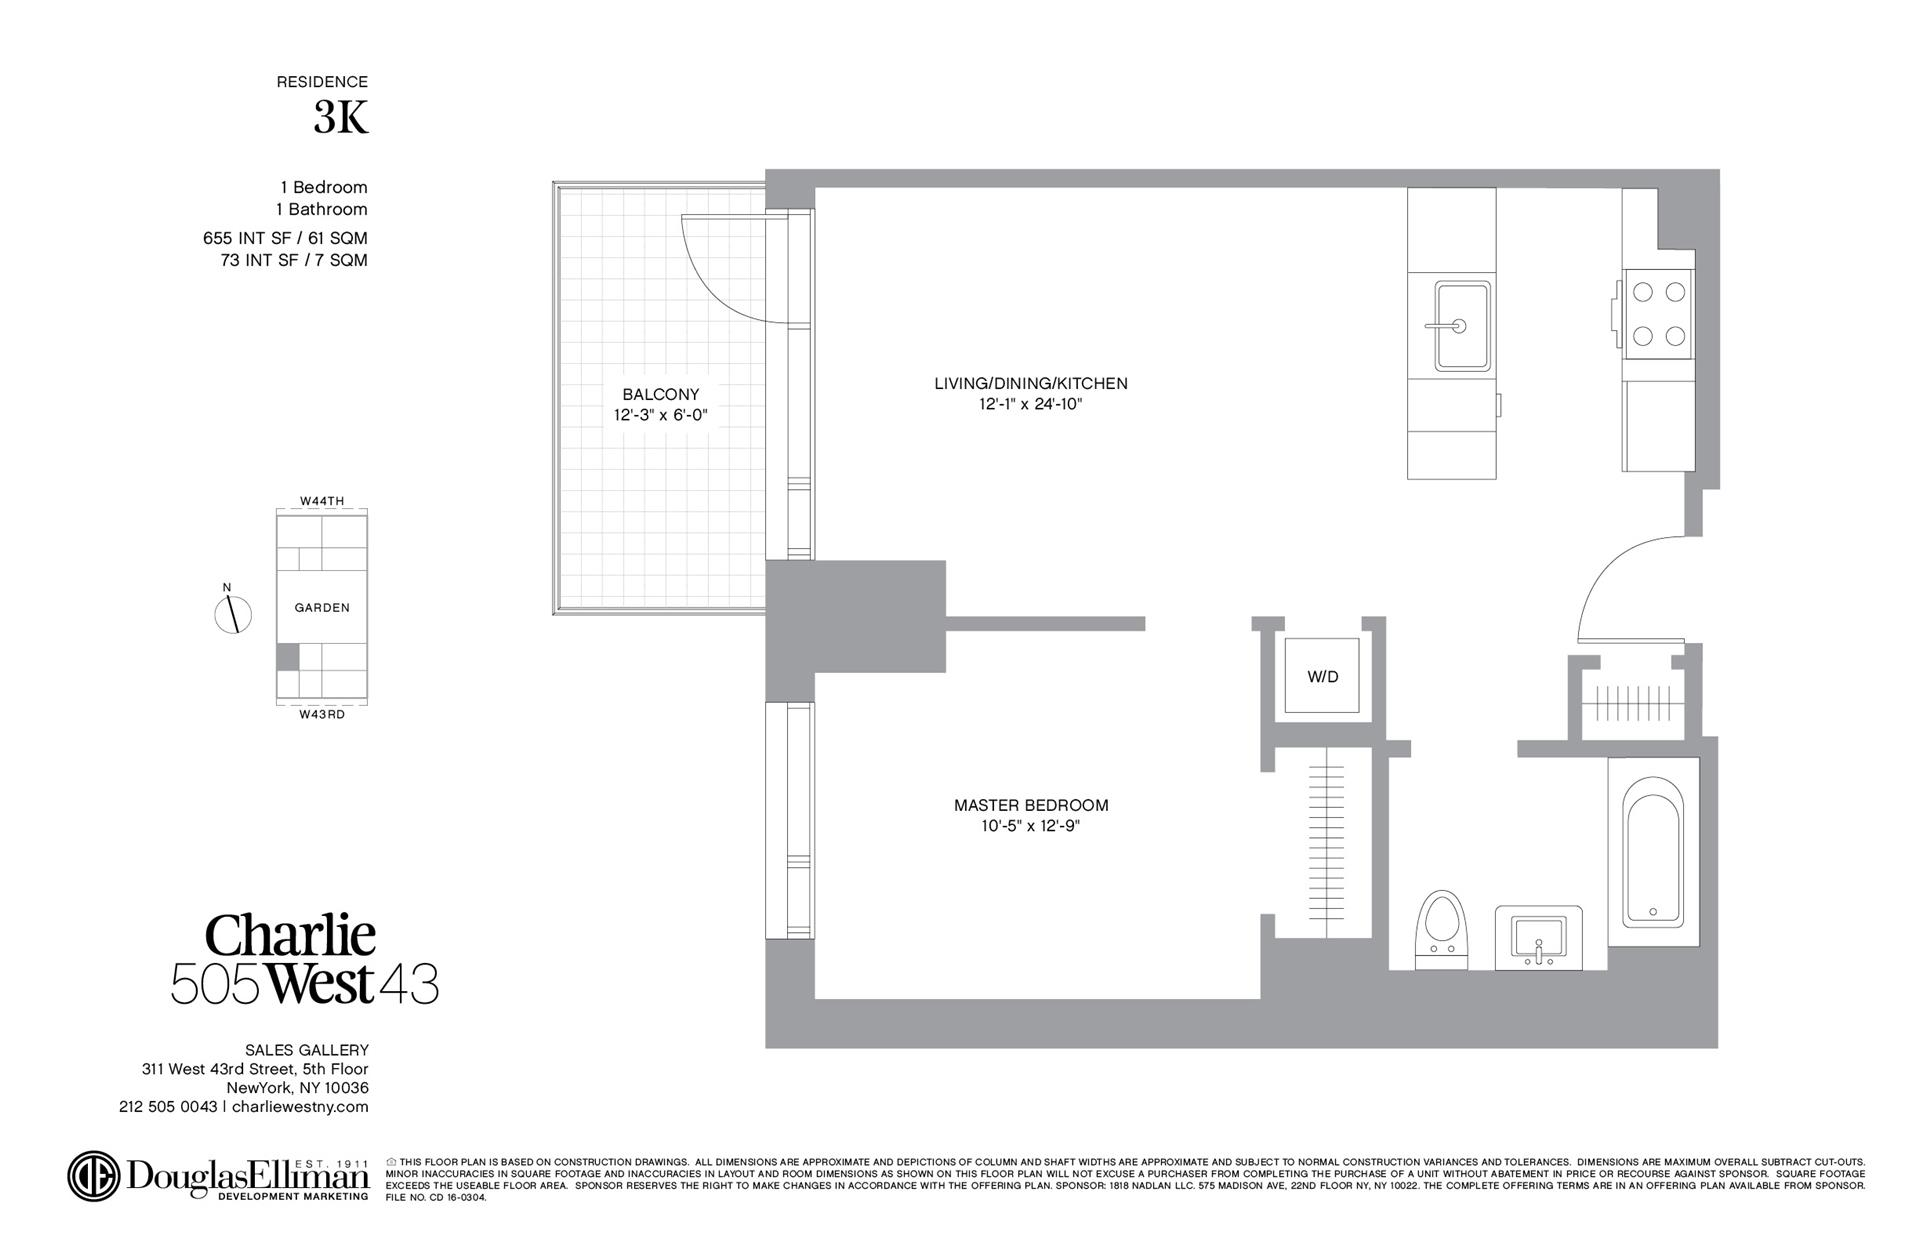 Floor plan of 505 West 43rd St, 3K - Clinton, New York